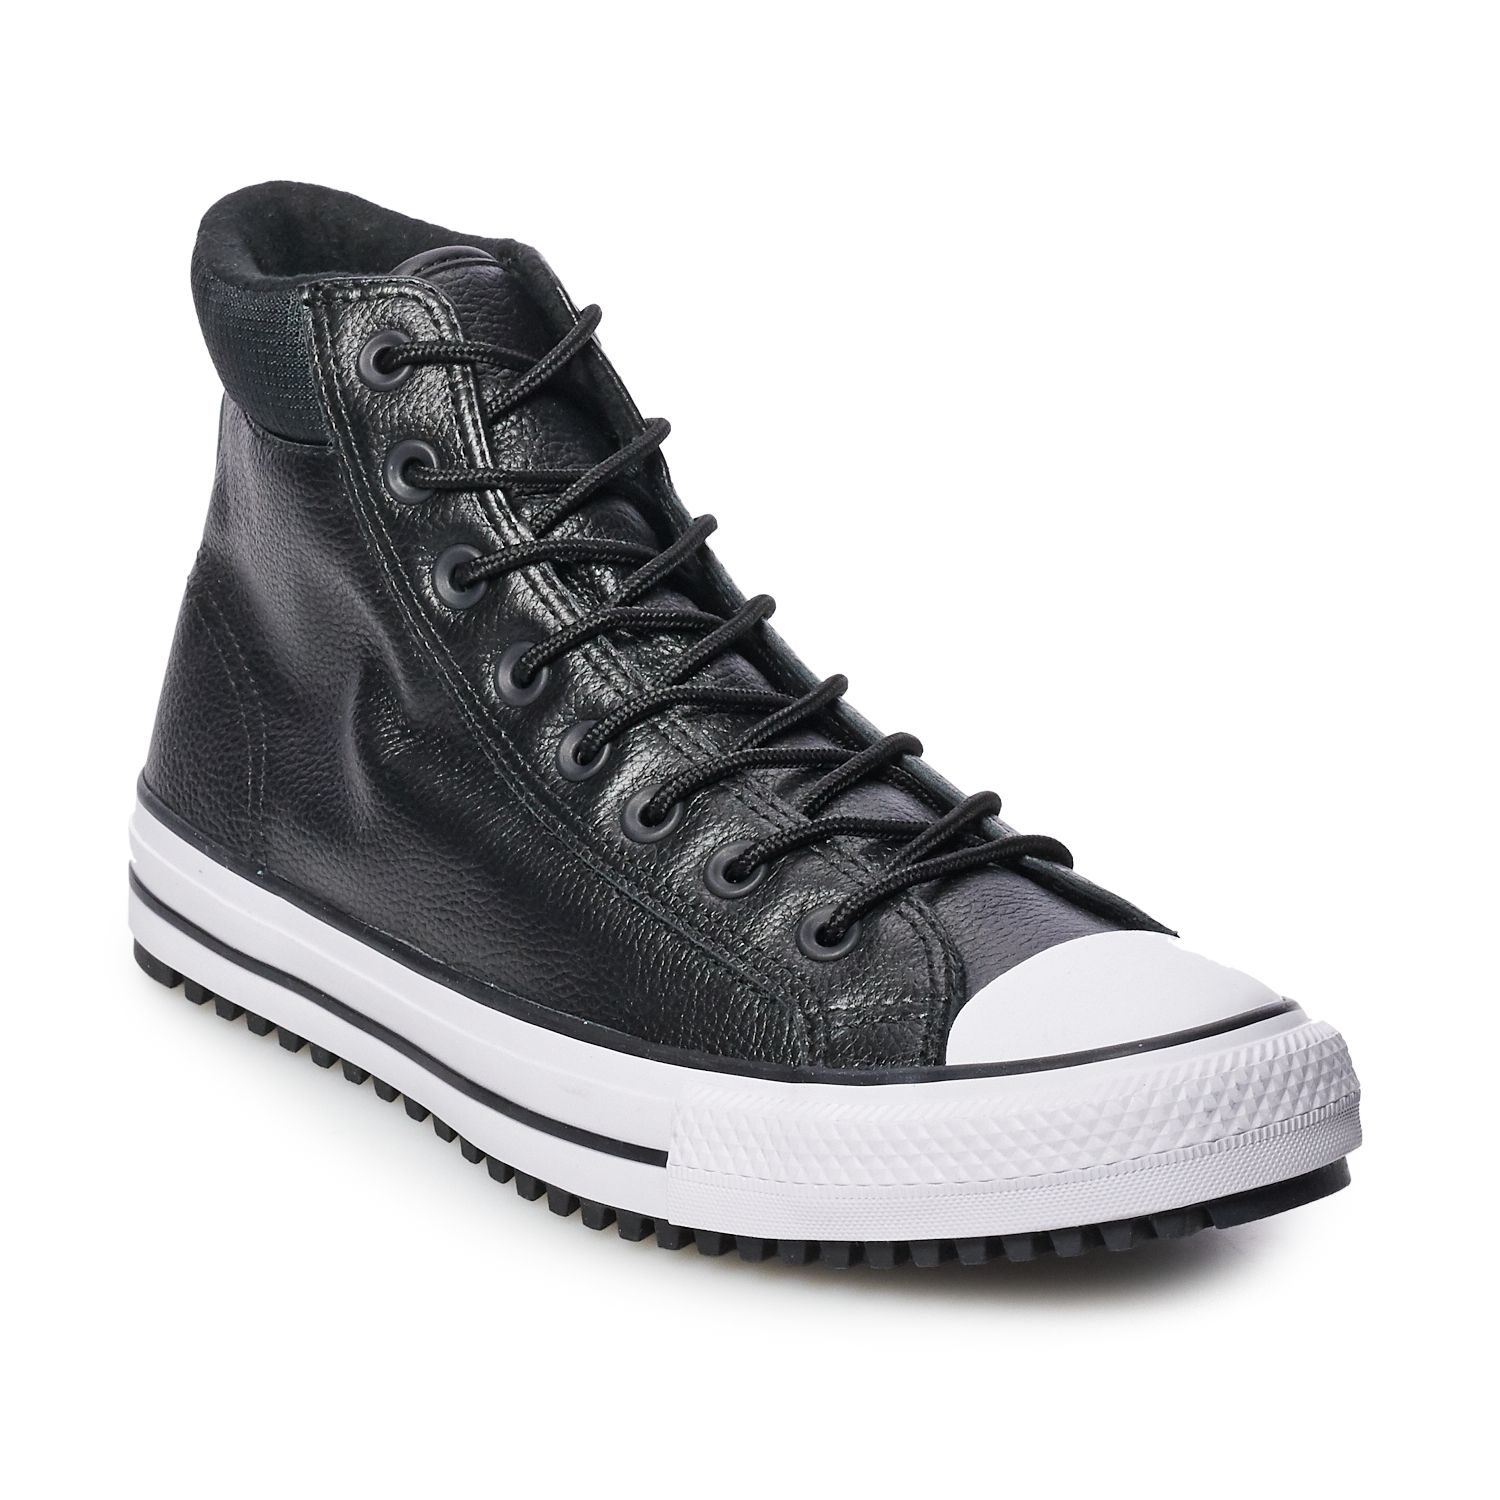 converse chuck taylor all star pc high top